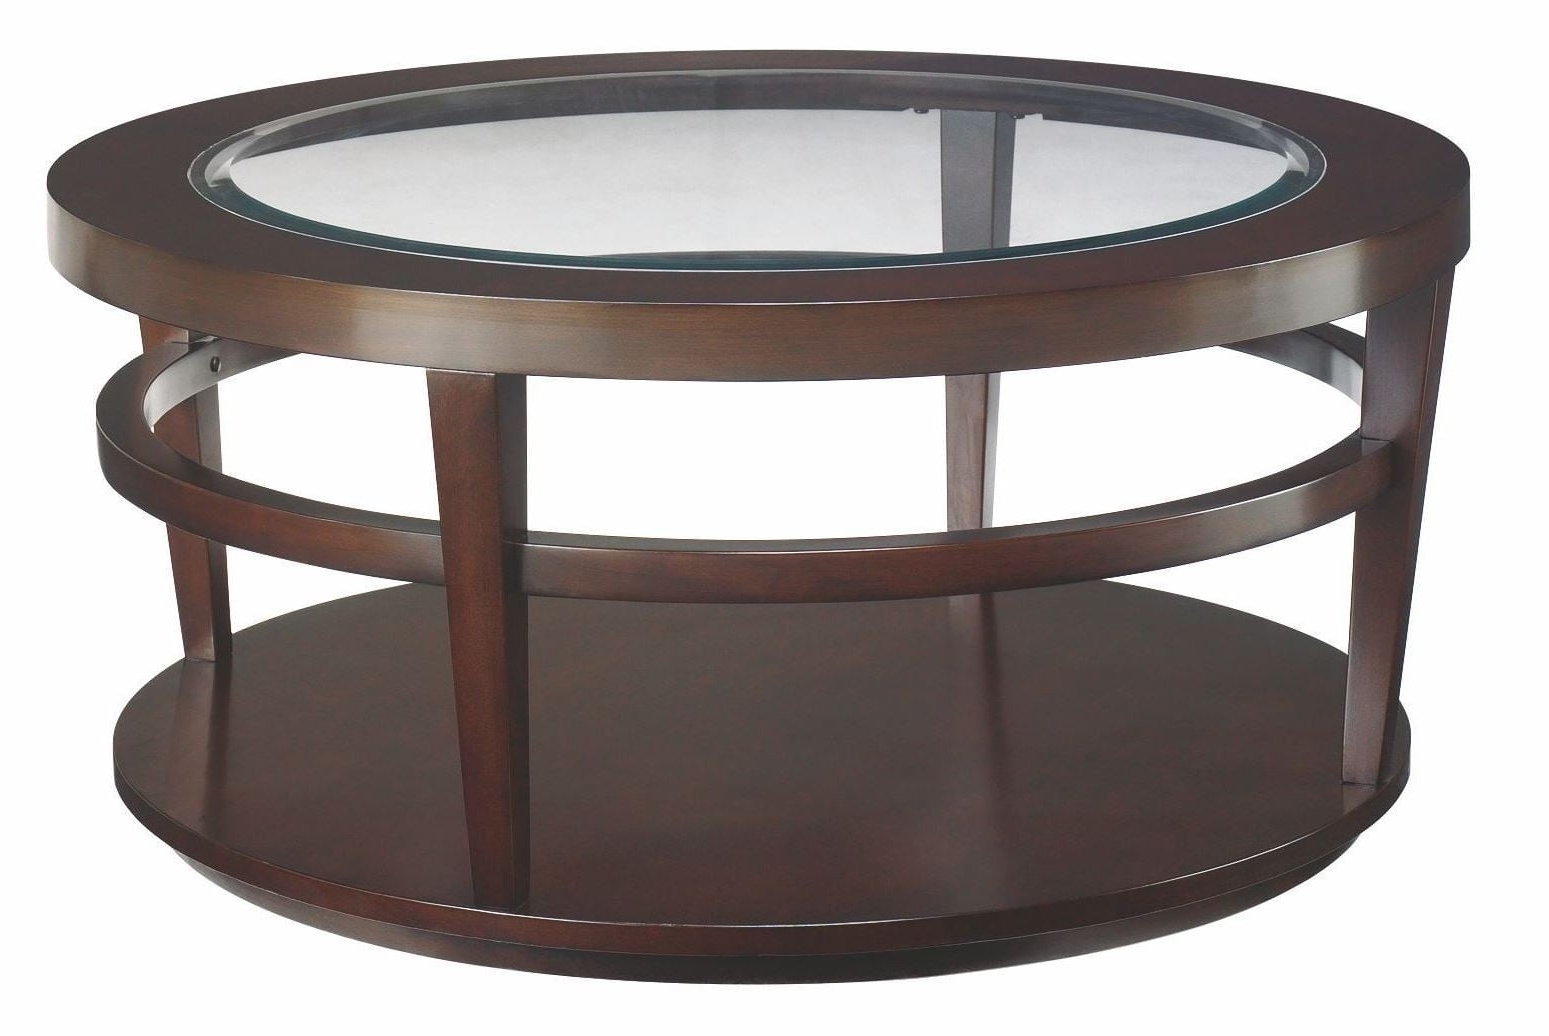 Famous Blanton Round Cocktail Tables Intended For Urbana Dark Merlot Round Cocktail Table, T20810 T2081505 00, Hammary (View 16 of 20)